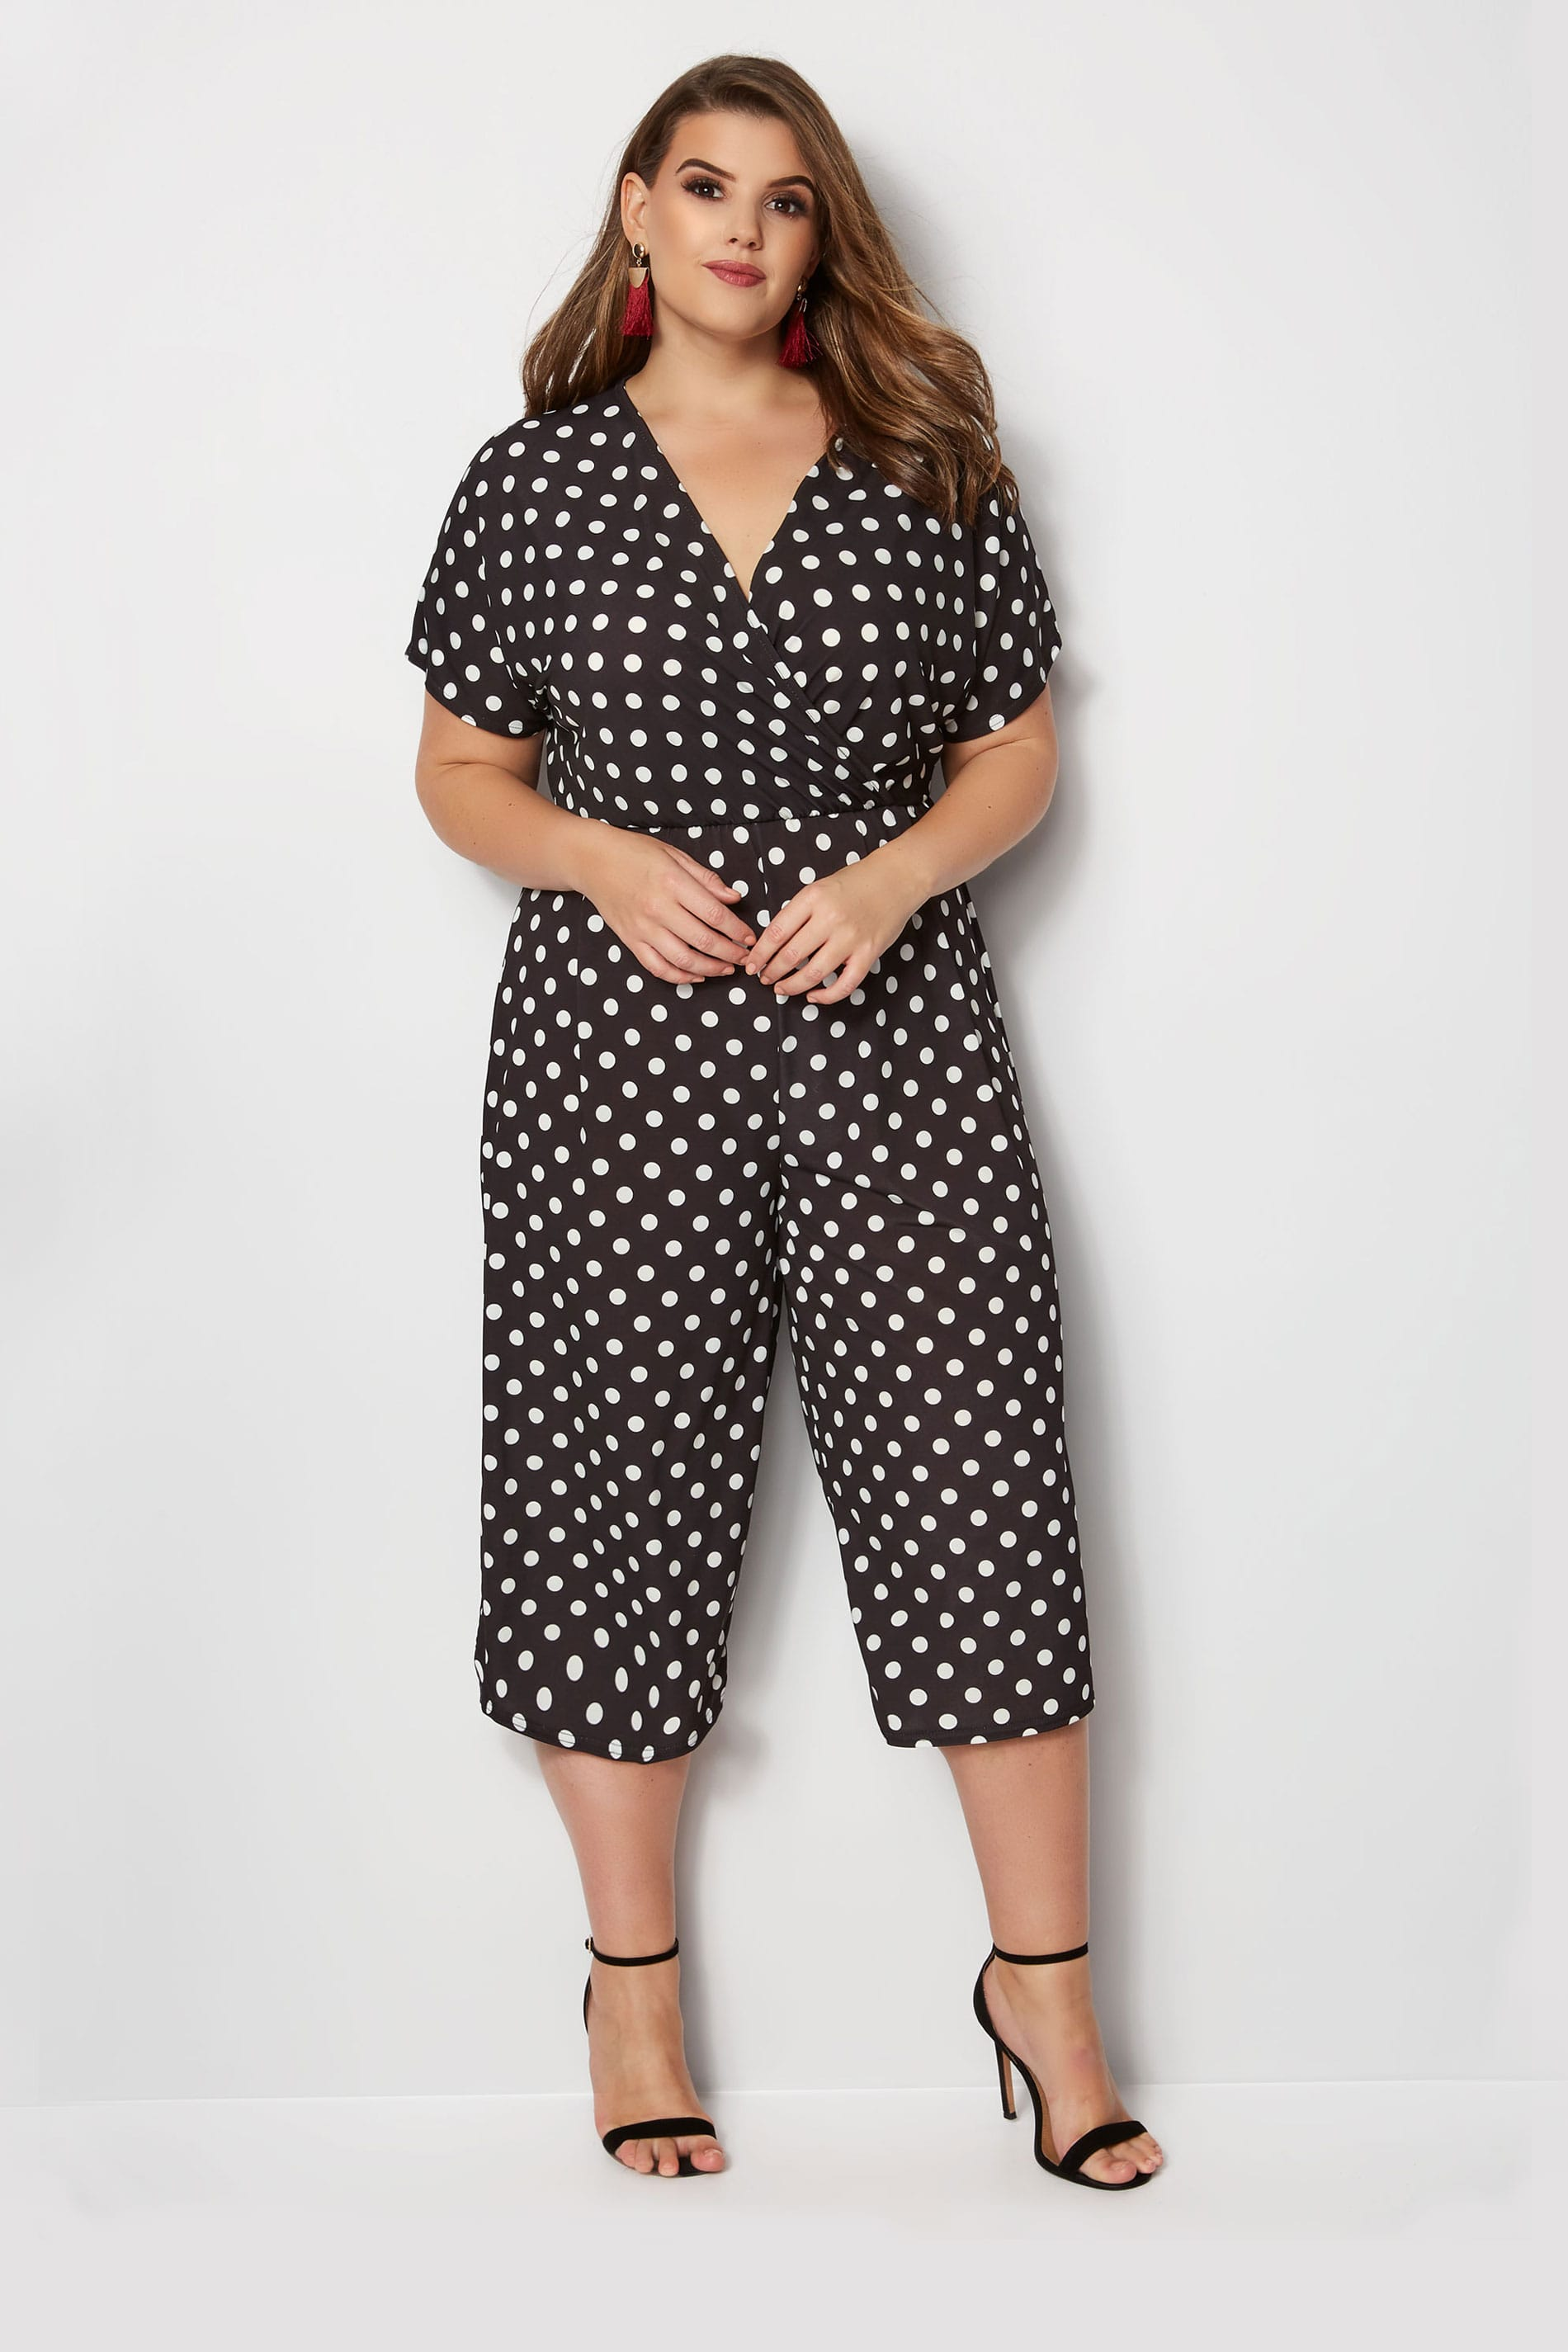 Yours London Black White Polka Dot Jumpsuit Plus Size 16 To 36